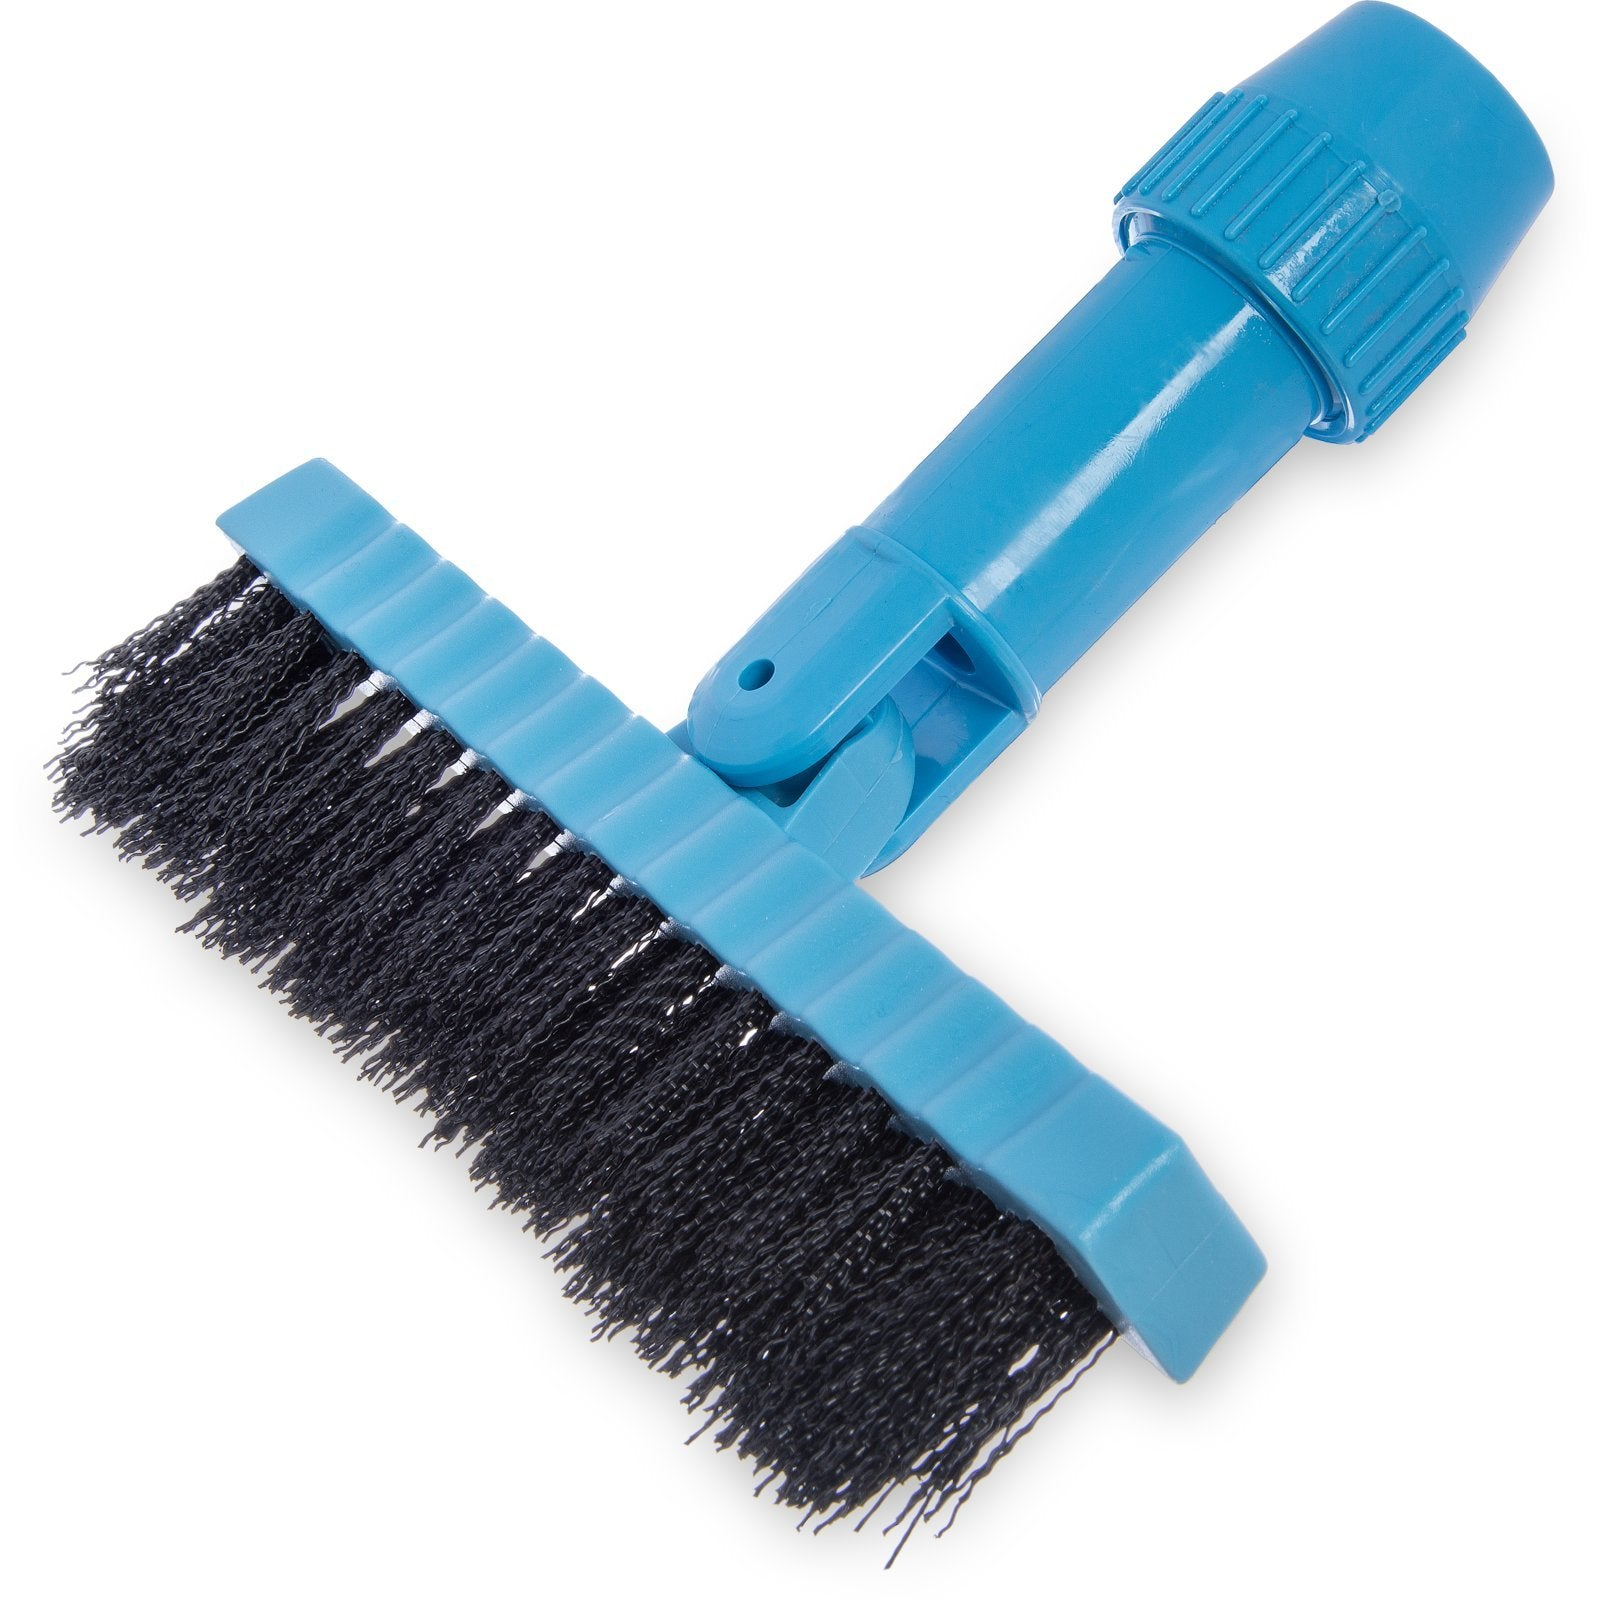 Carlisle Pivoting Grout Brush Blue